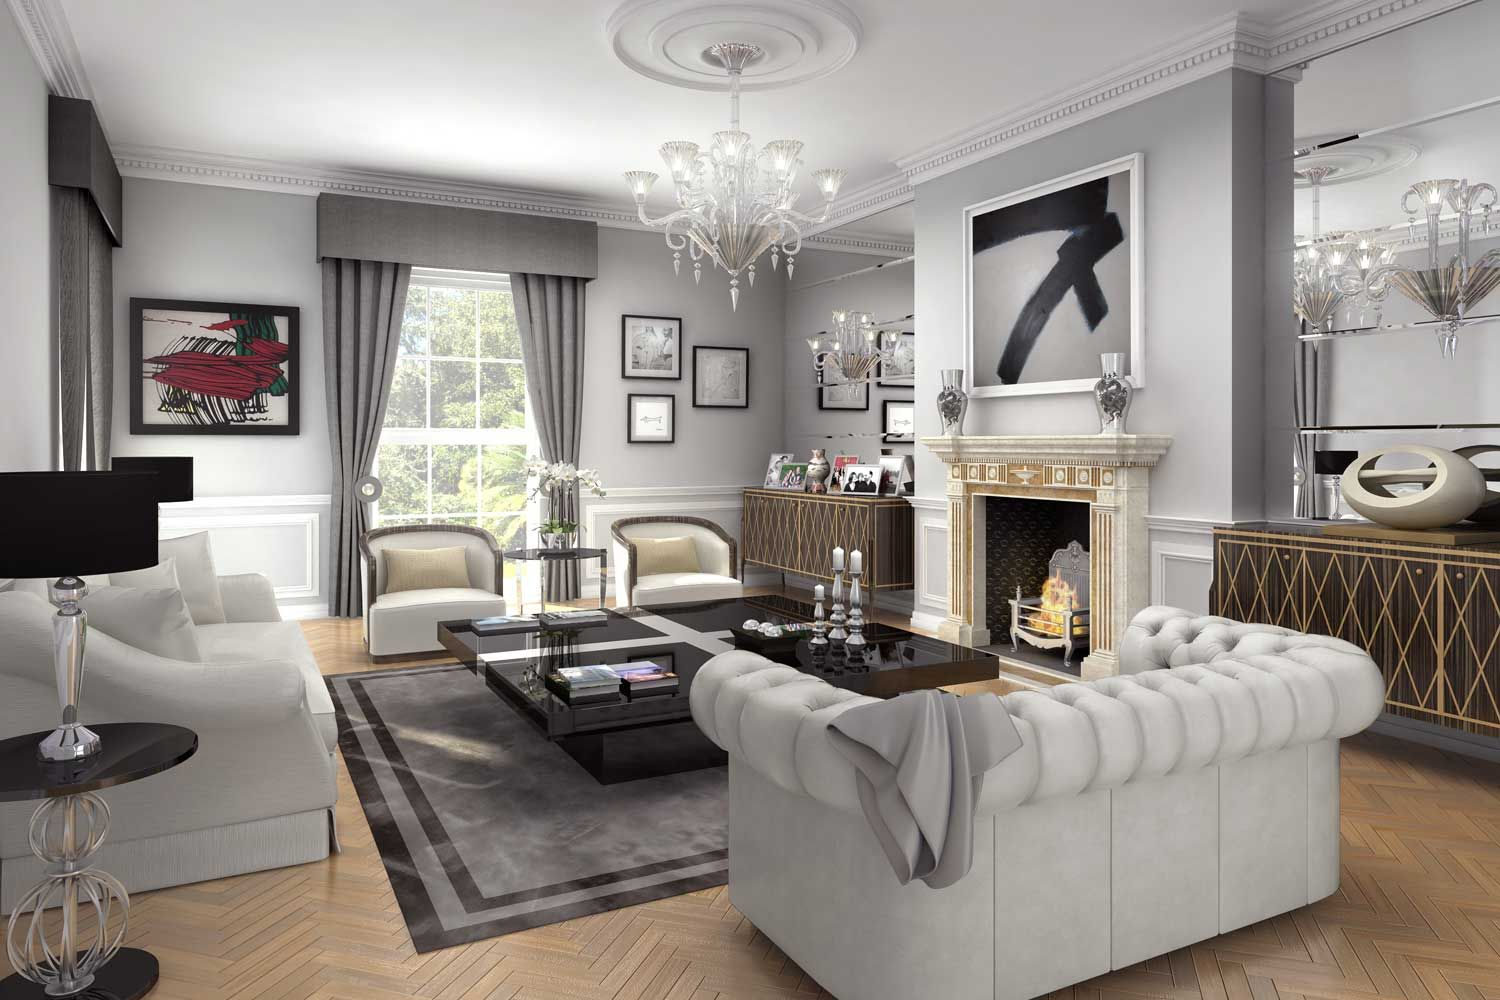 Interior artists impression of a reception room in Regents Park   Living  room   Pinterest   Reception rooms, Living rooms and Room